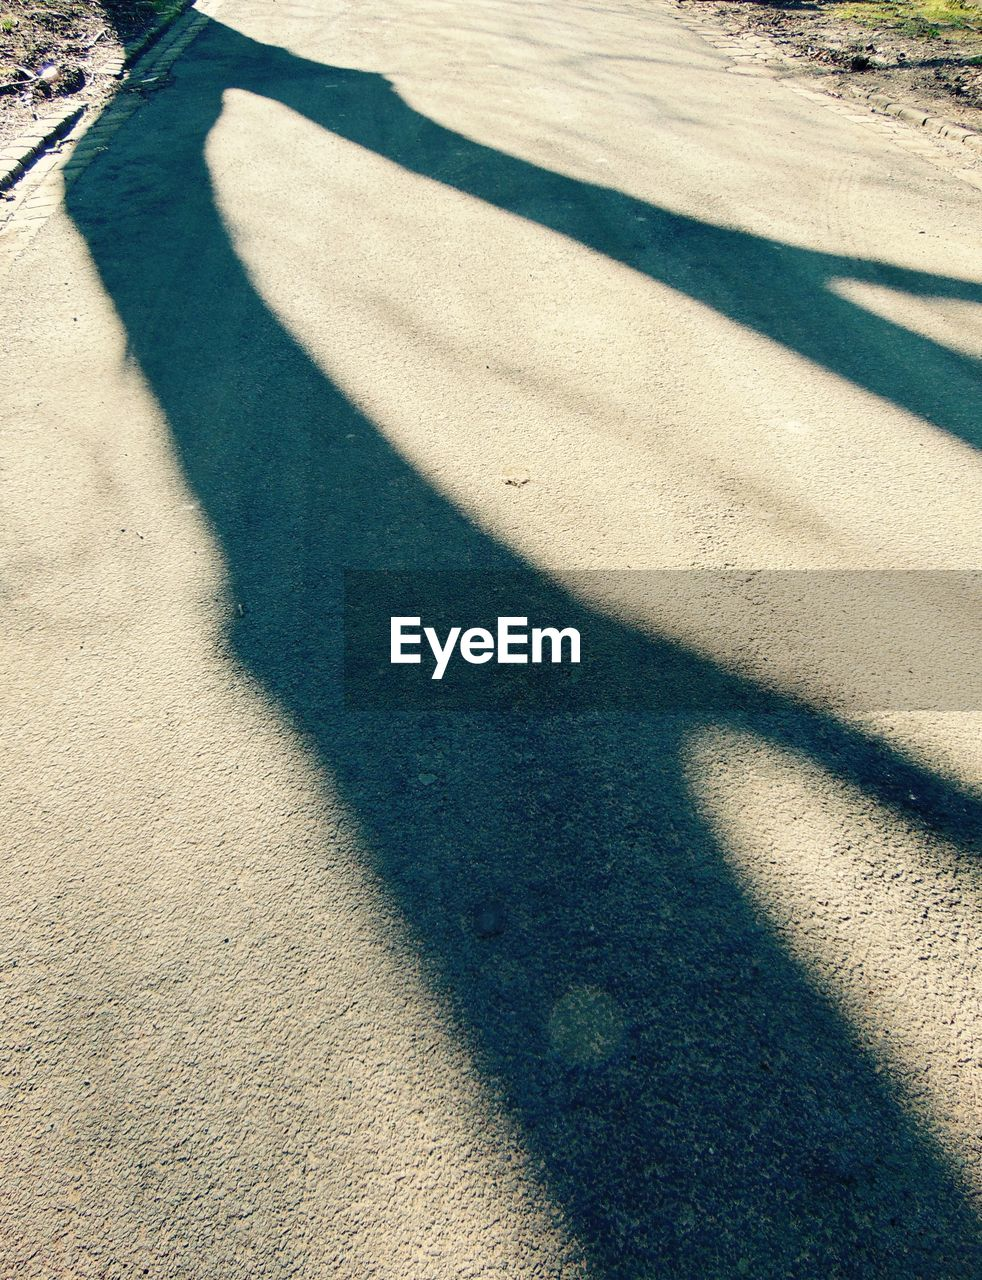 shadow, sunlight, focus on shadow, day, high angle view, outdoors, nature, no people, cold temperature